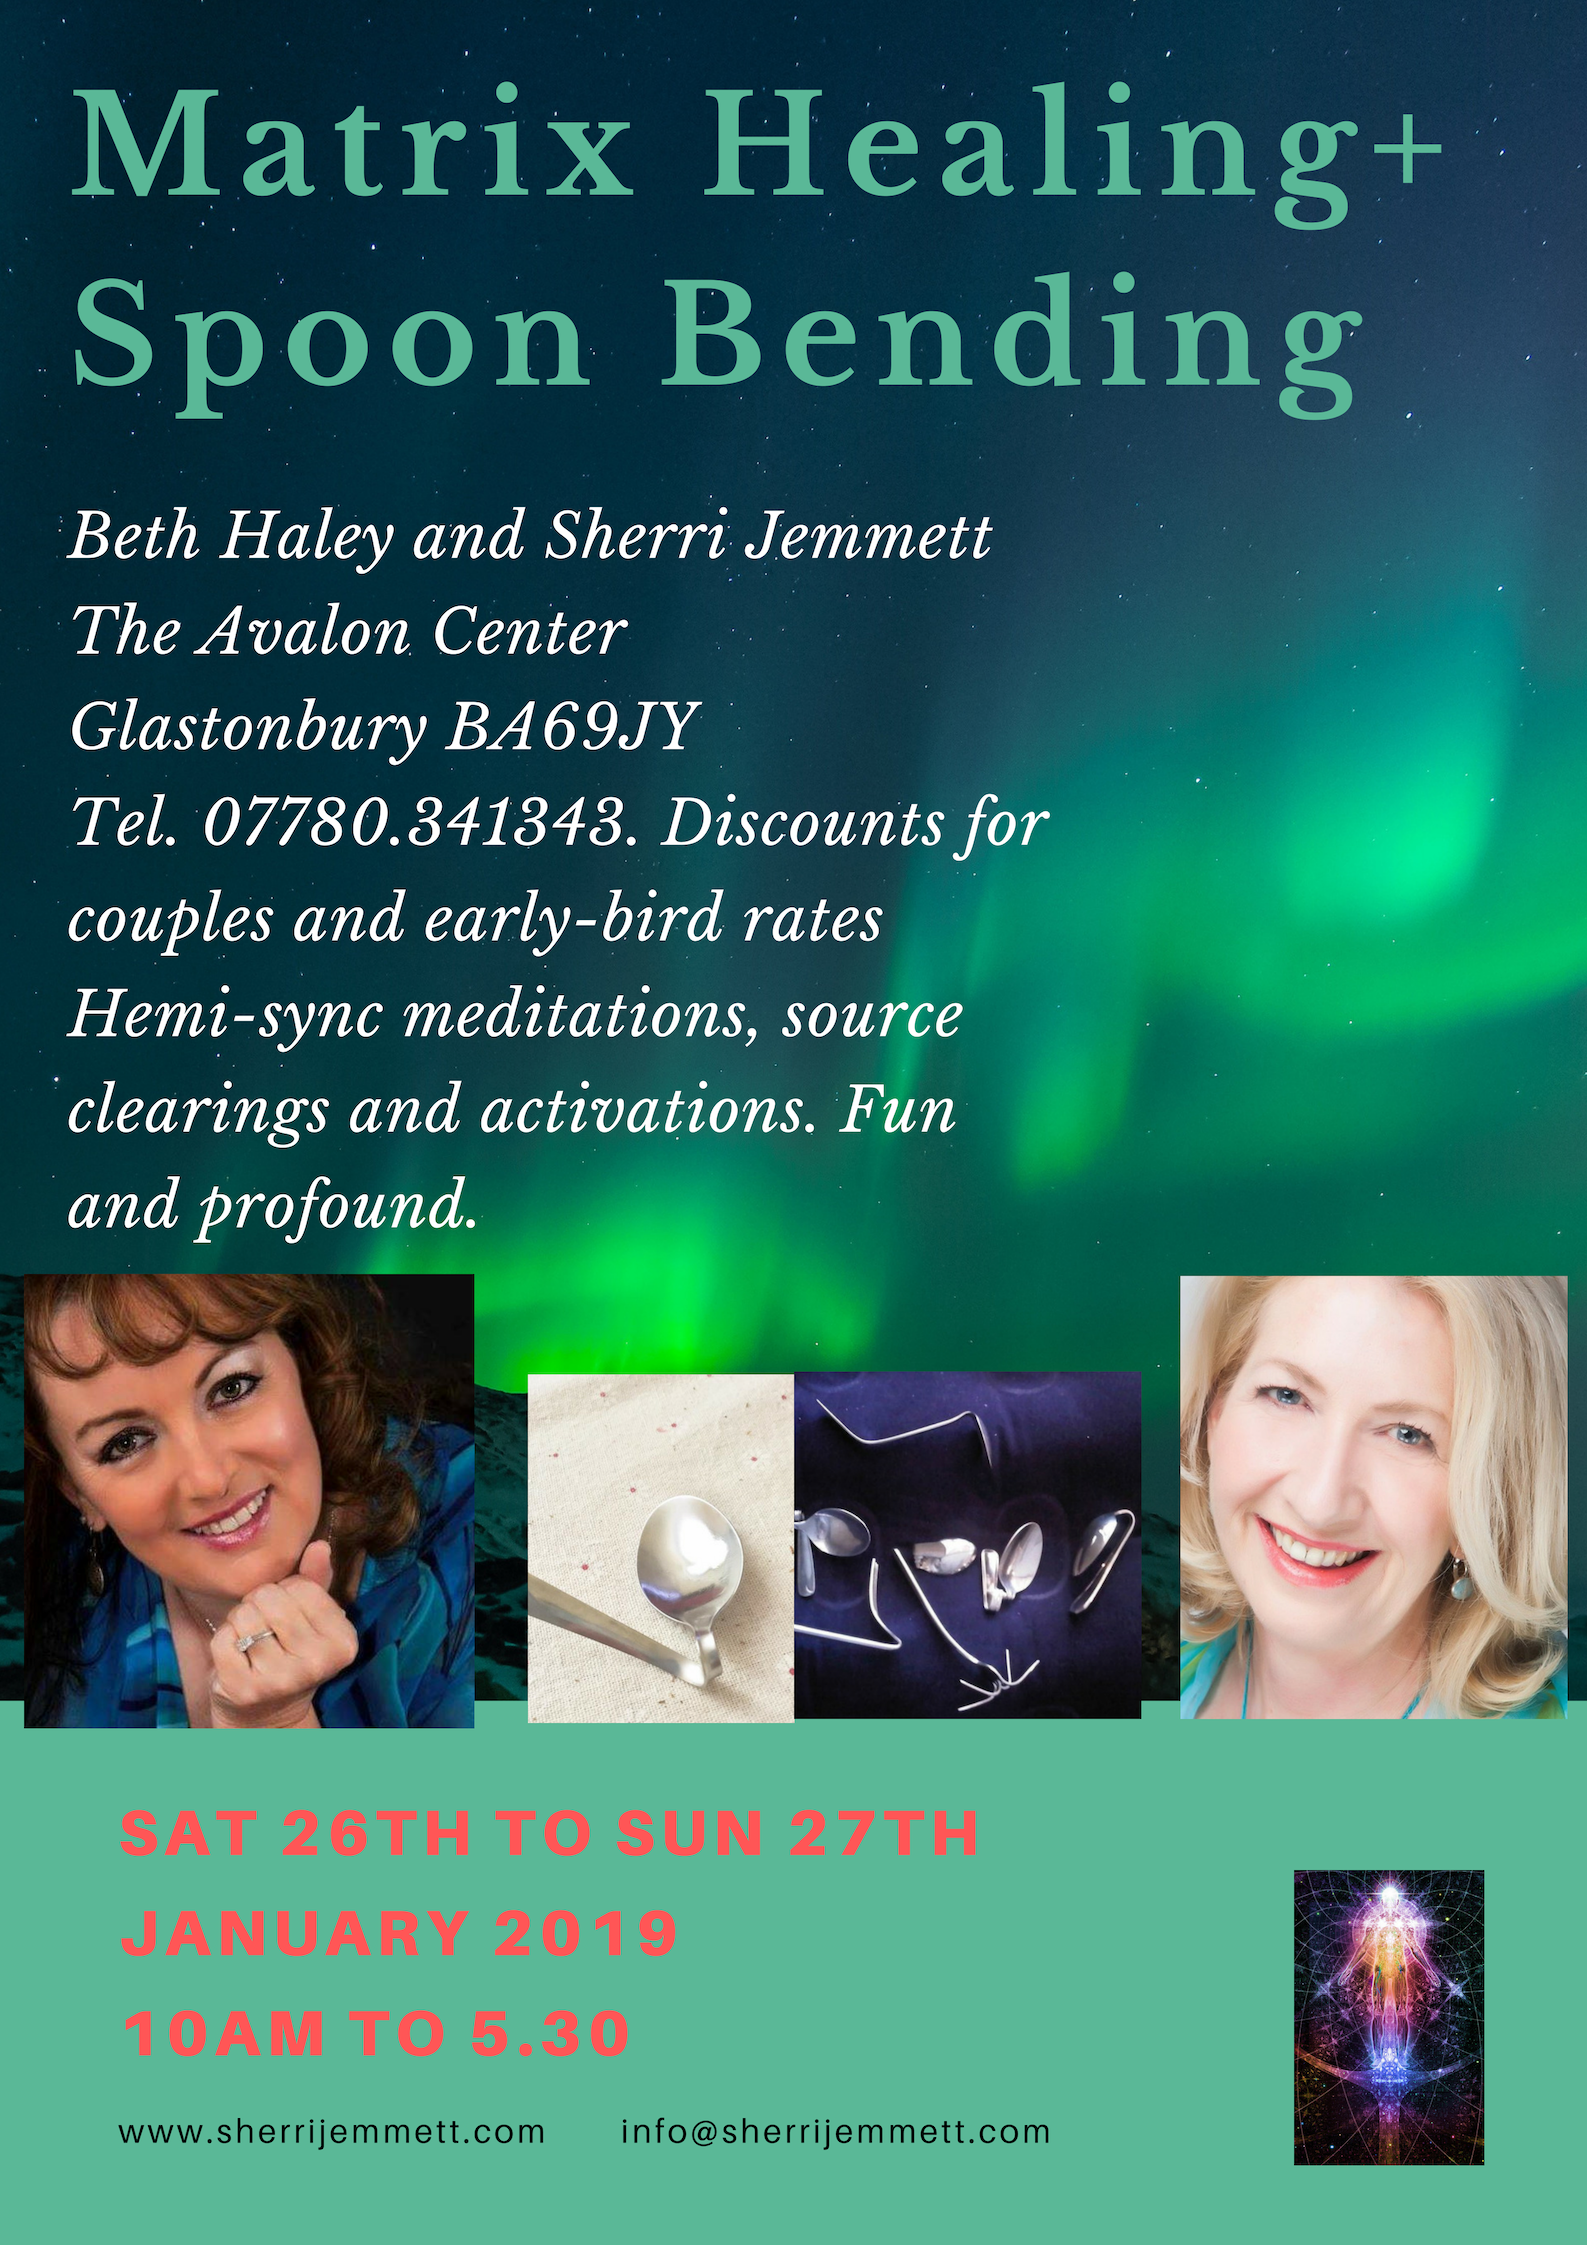 Matrix Healing Spoon Bending